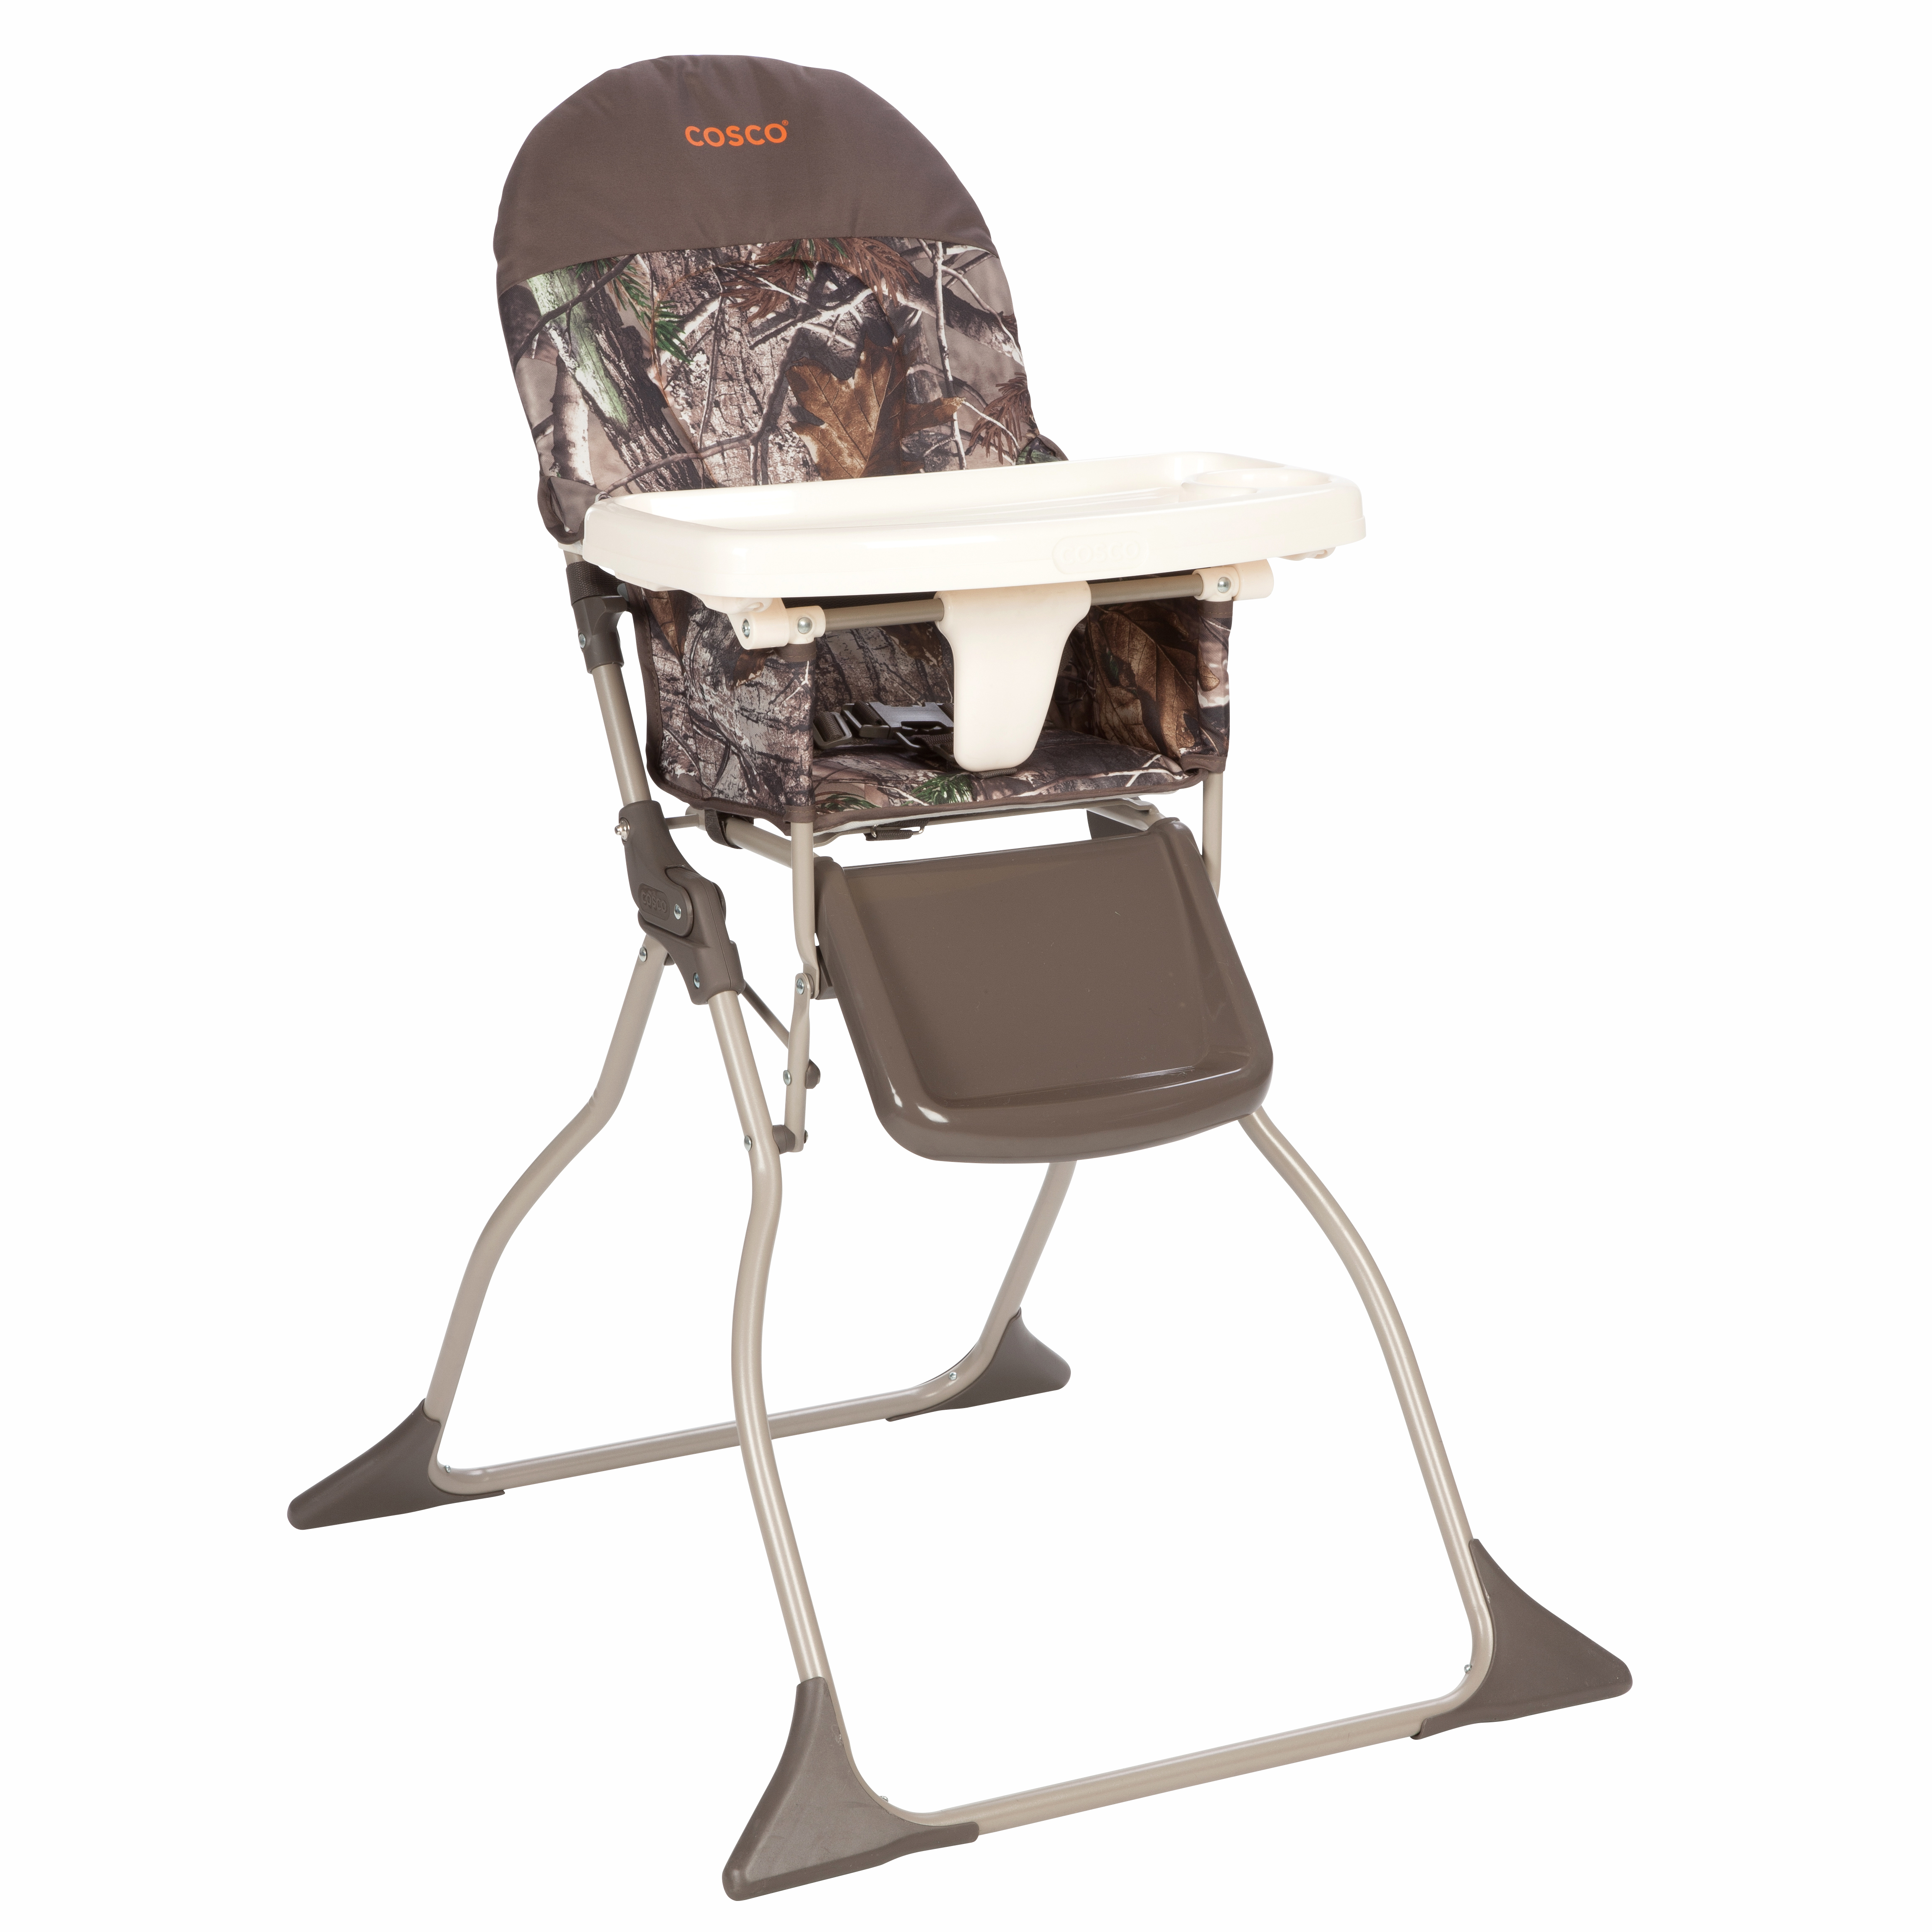 6487e2a05 Details about Cosco Baby Toddler High Chair Folding Portable Kid Eat Padded  Seat Realtree Camo